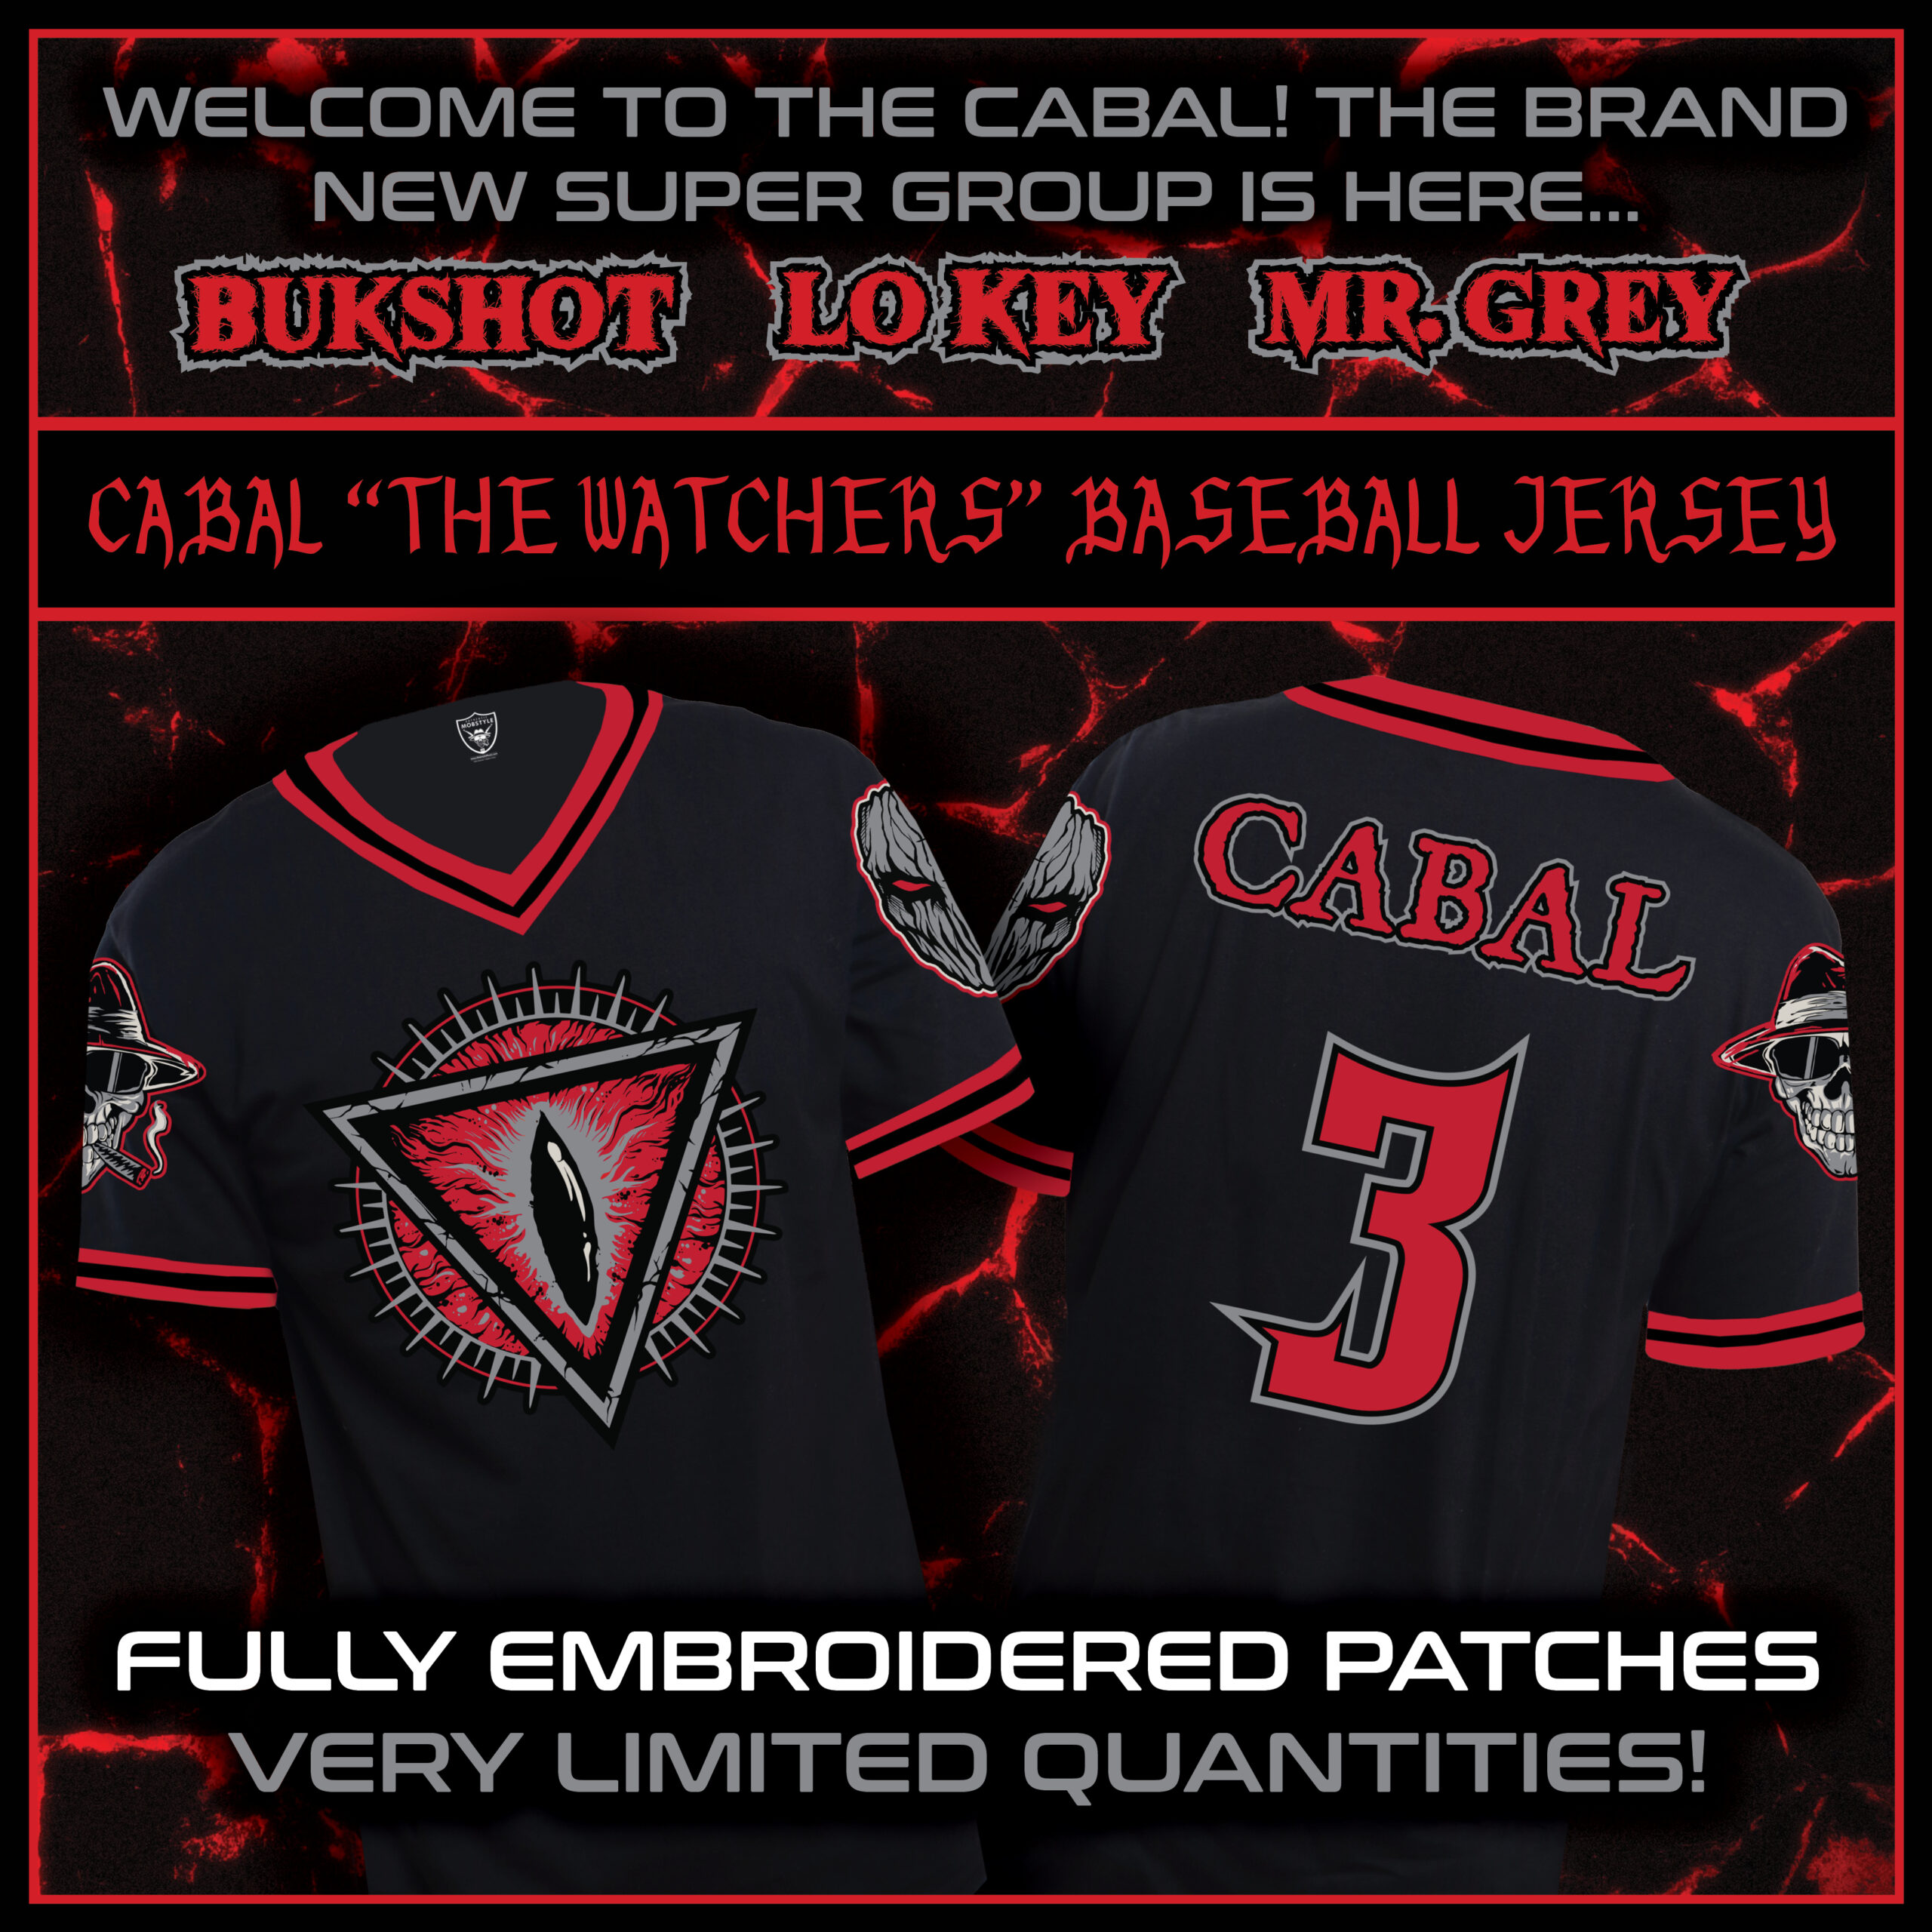 Cabal Embroidered Baseball Jersey (EXTREMELY LIMITED!!!)